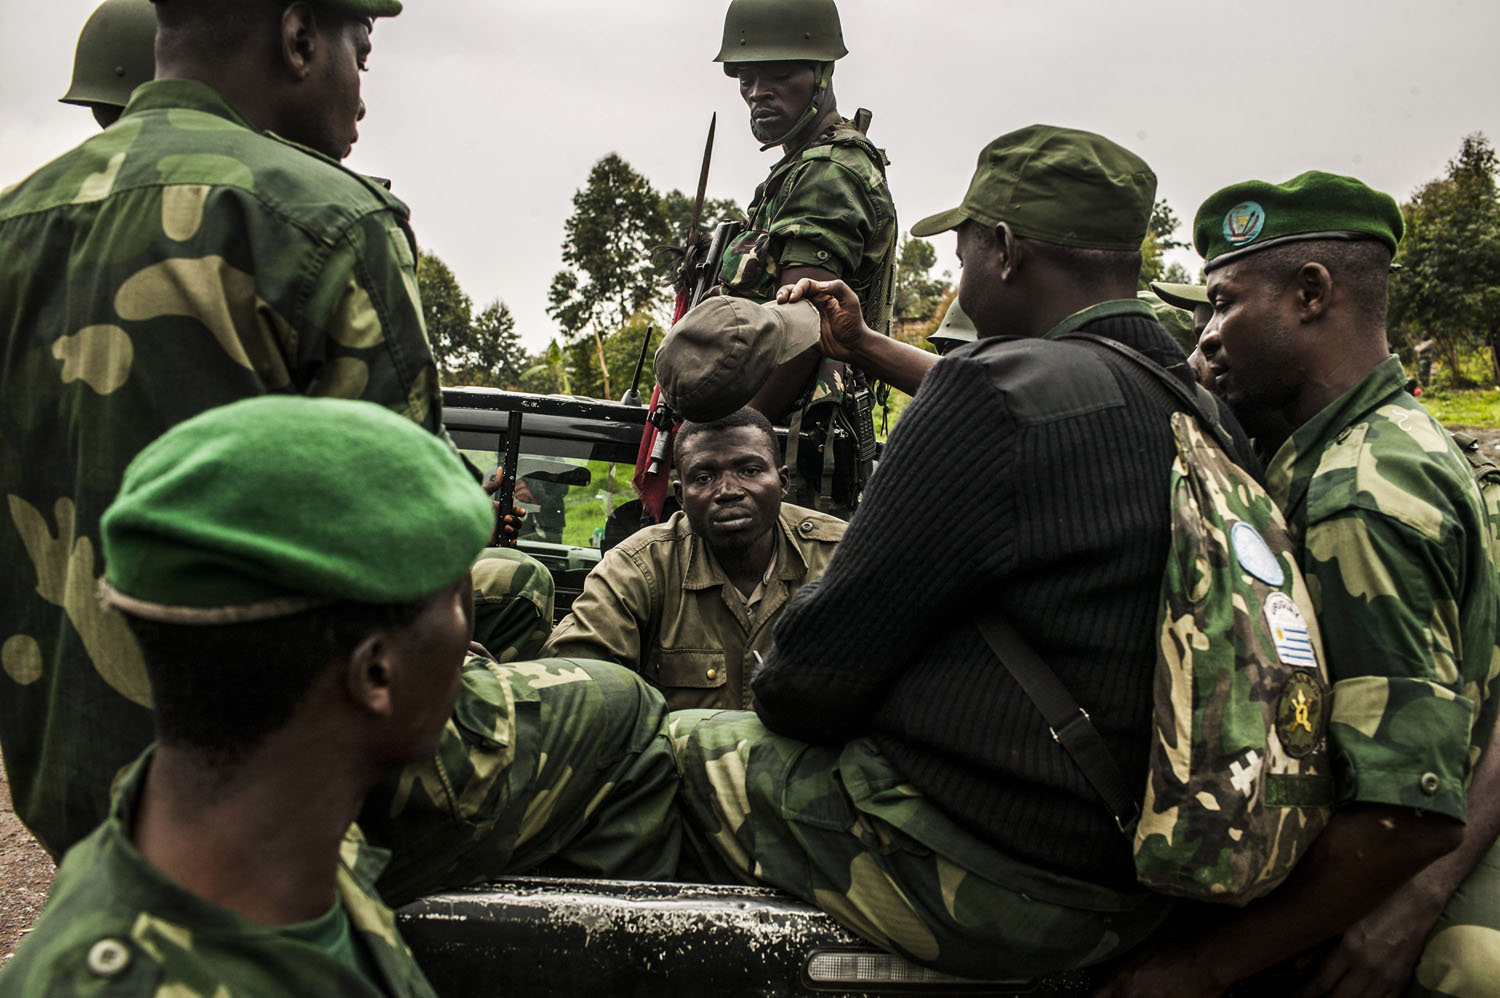 A surrendered rebel from the M-23 rebellion (center, seated) is transported by members of the FARDC from the frontline near the village of Kibati, north of Goma.